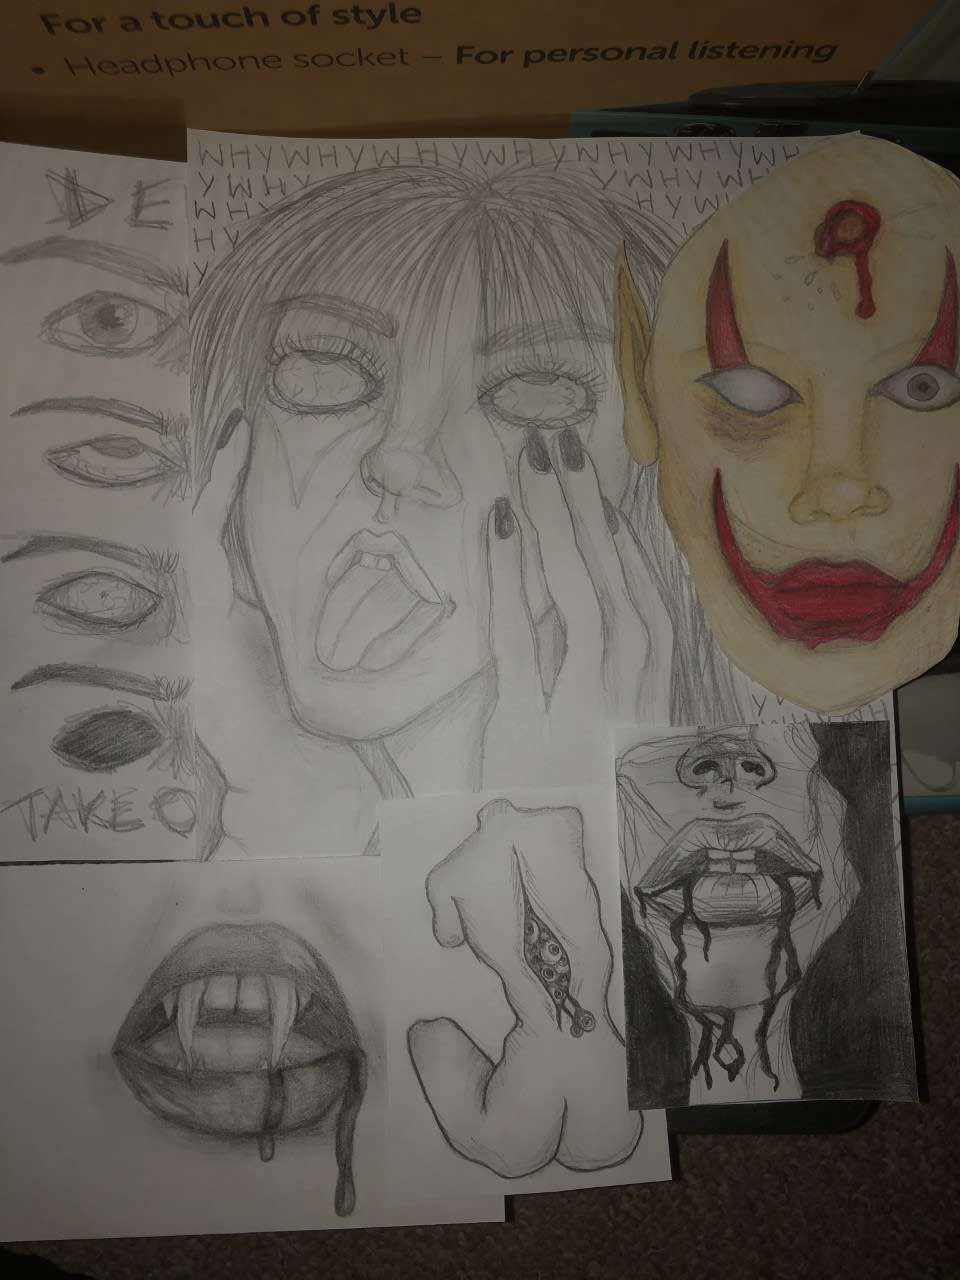 'A series of wicked' Chloe Elise Stevens, age16 Inspired by Pure Evil